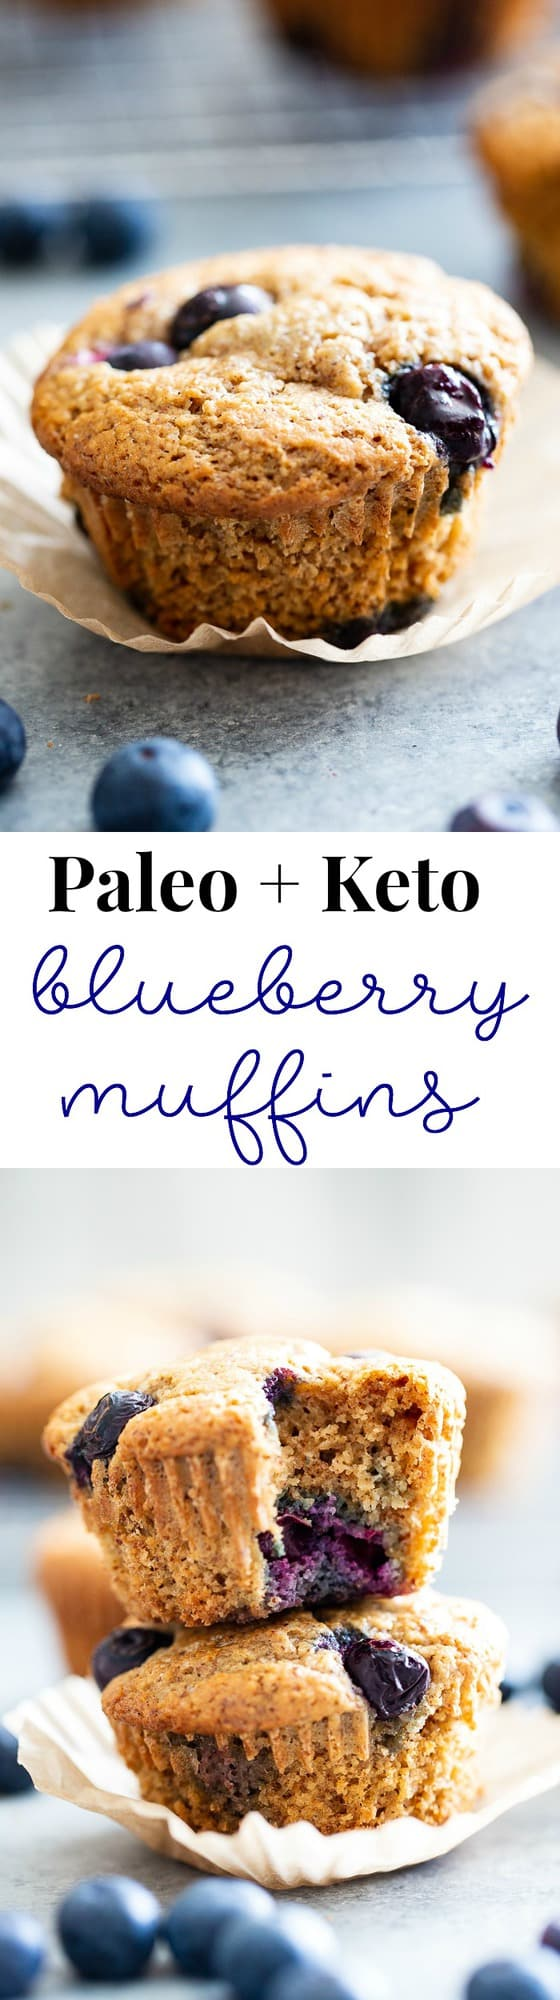 These keto blueberry muffins have a crisp top and a soft, fluffy inside! They have a sweet nutty flavor thanks to almond butter and almond flour, and are loaded with plenty of juicy sweet blueberries. They're paleo, gluten-free, dairy-free, and low carb.